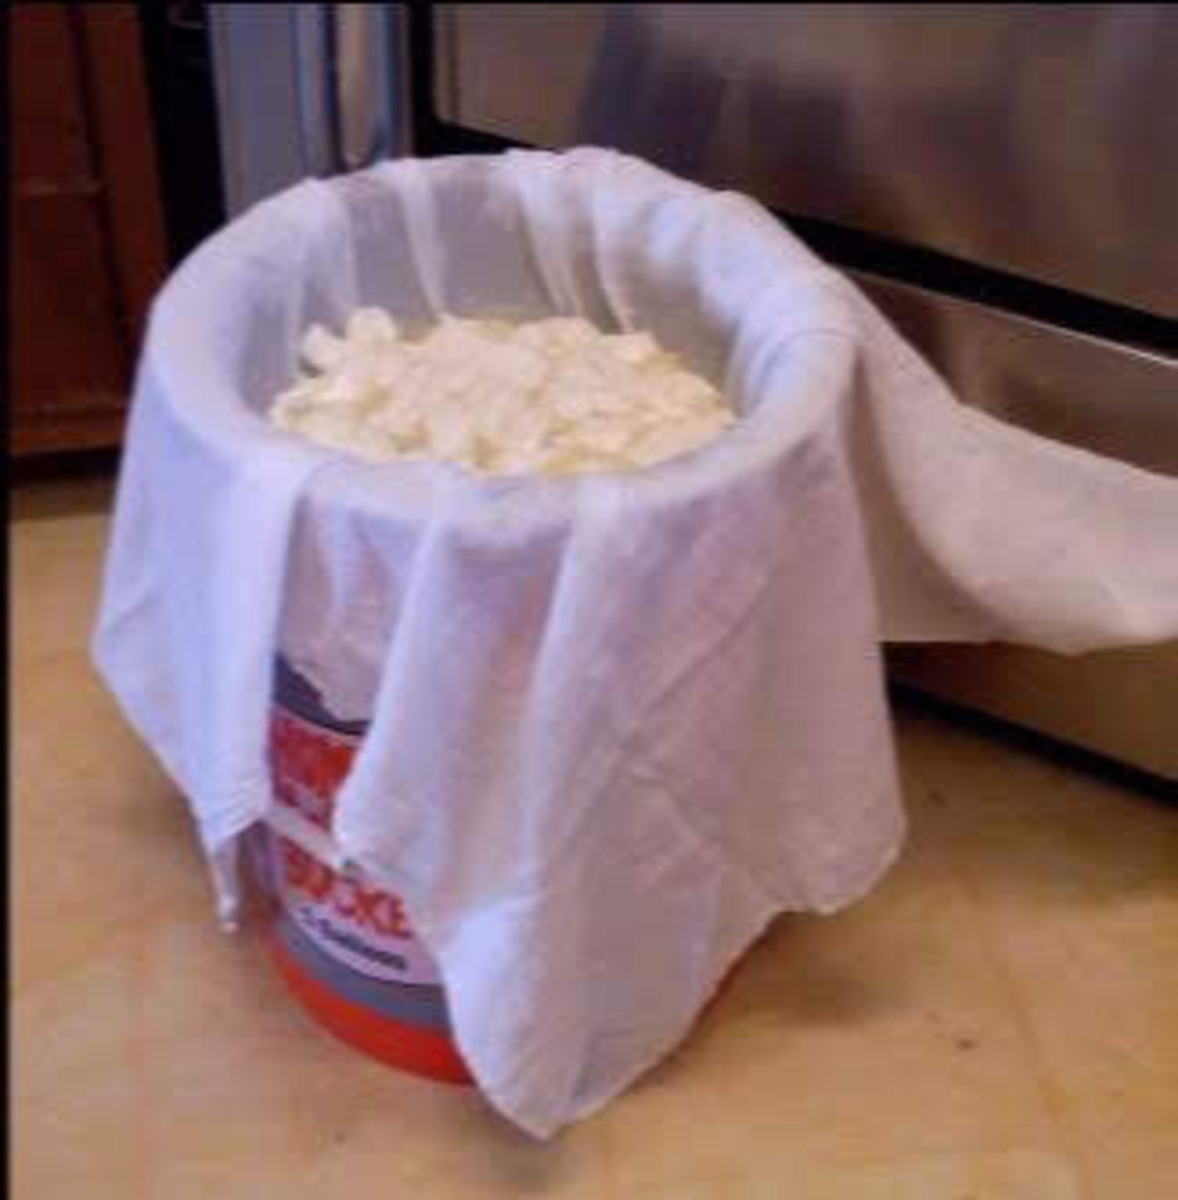 Drain the cheese over a colander lined with a tea-towel draped into it, fitted into a 5-gallon bucket.